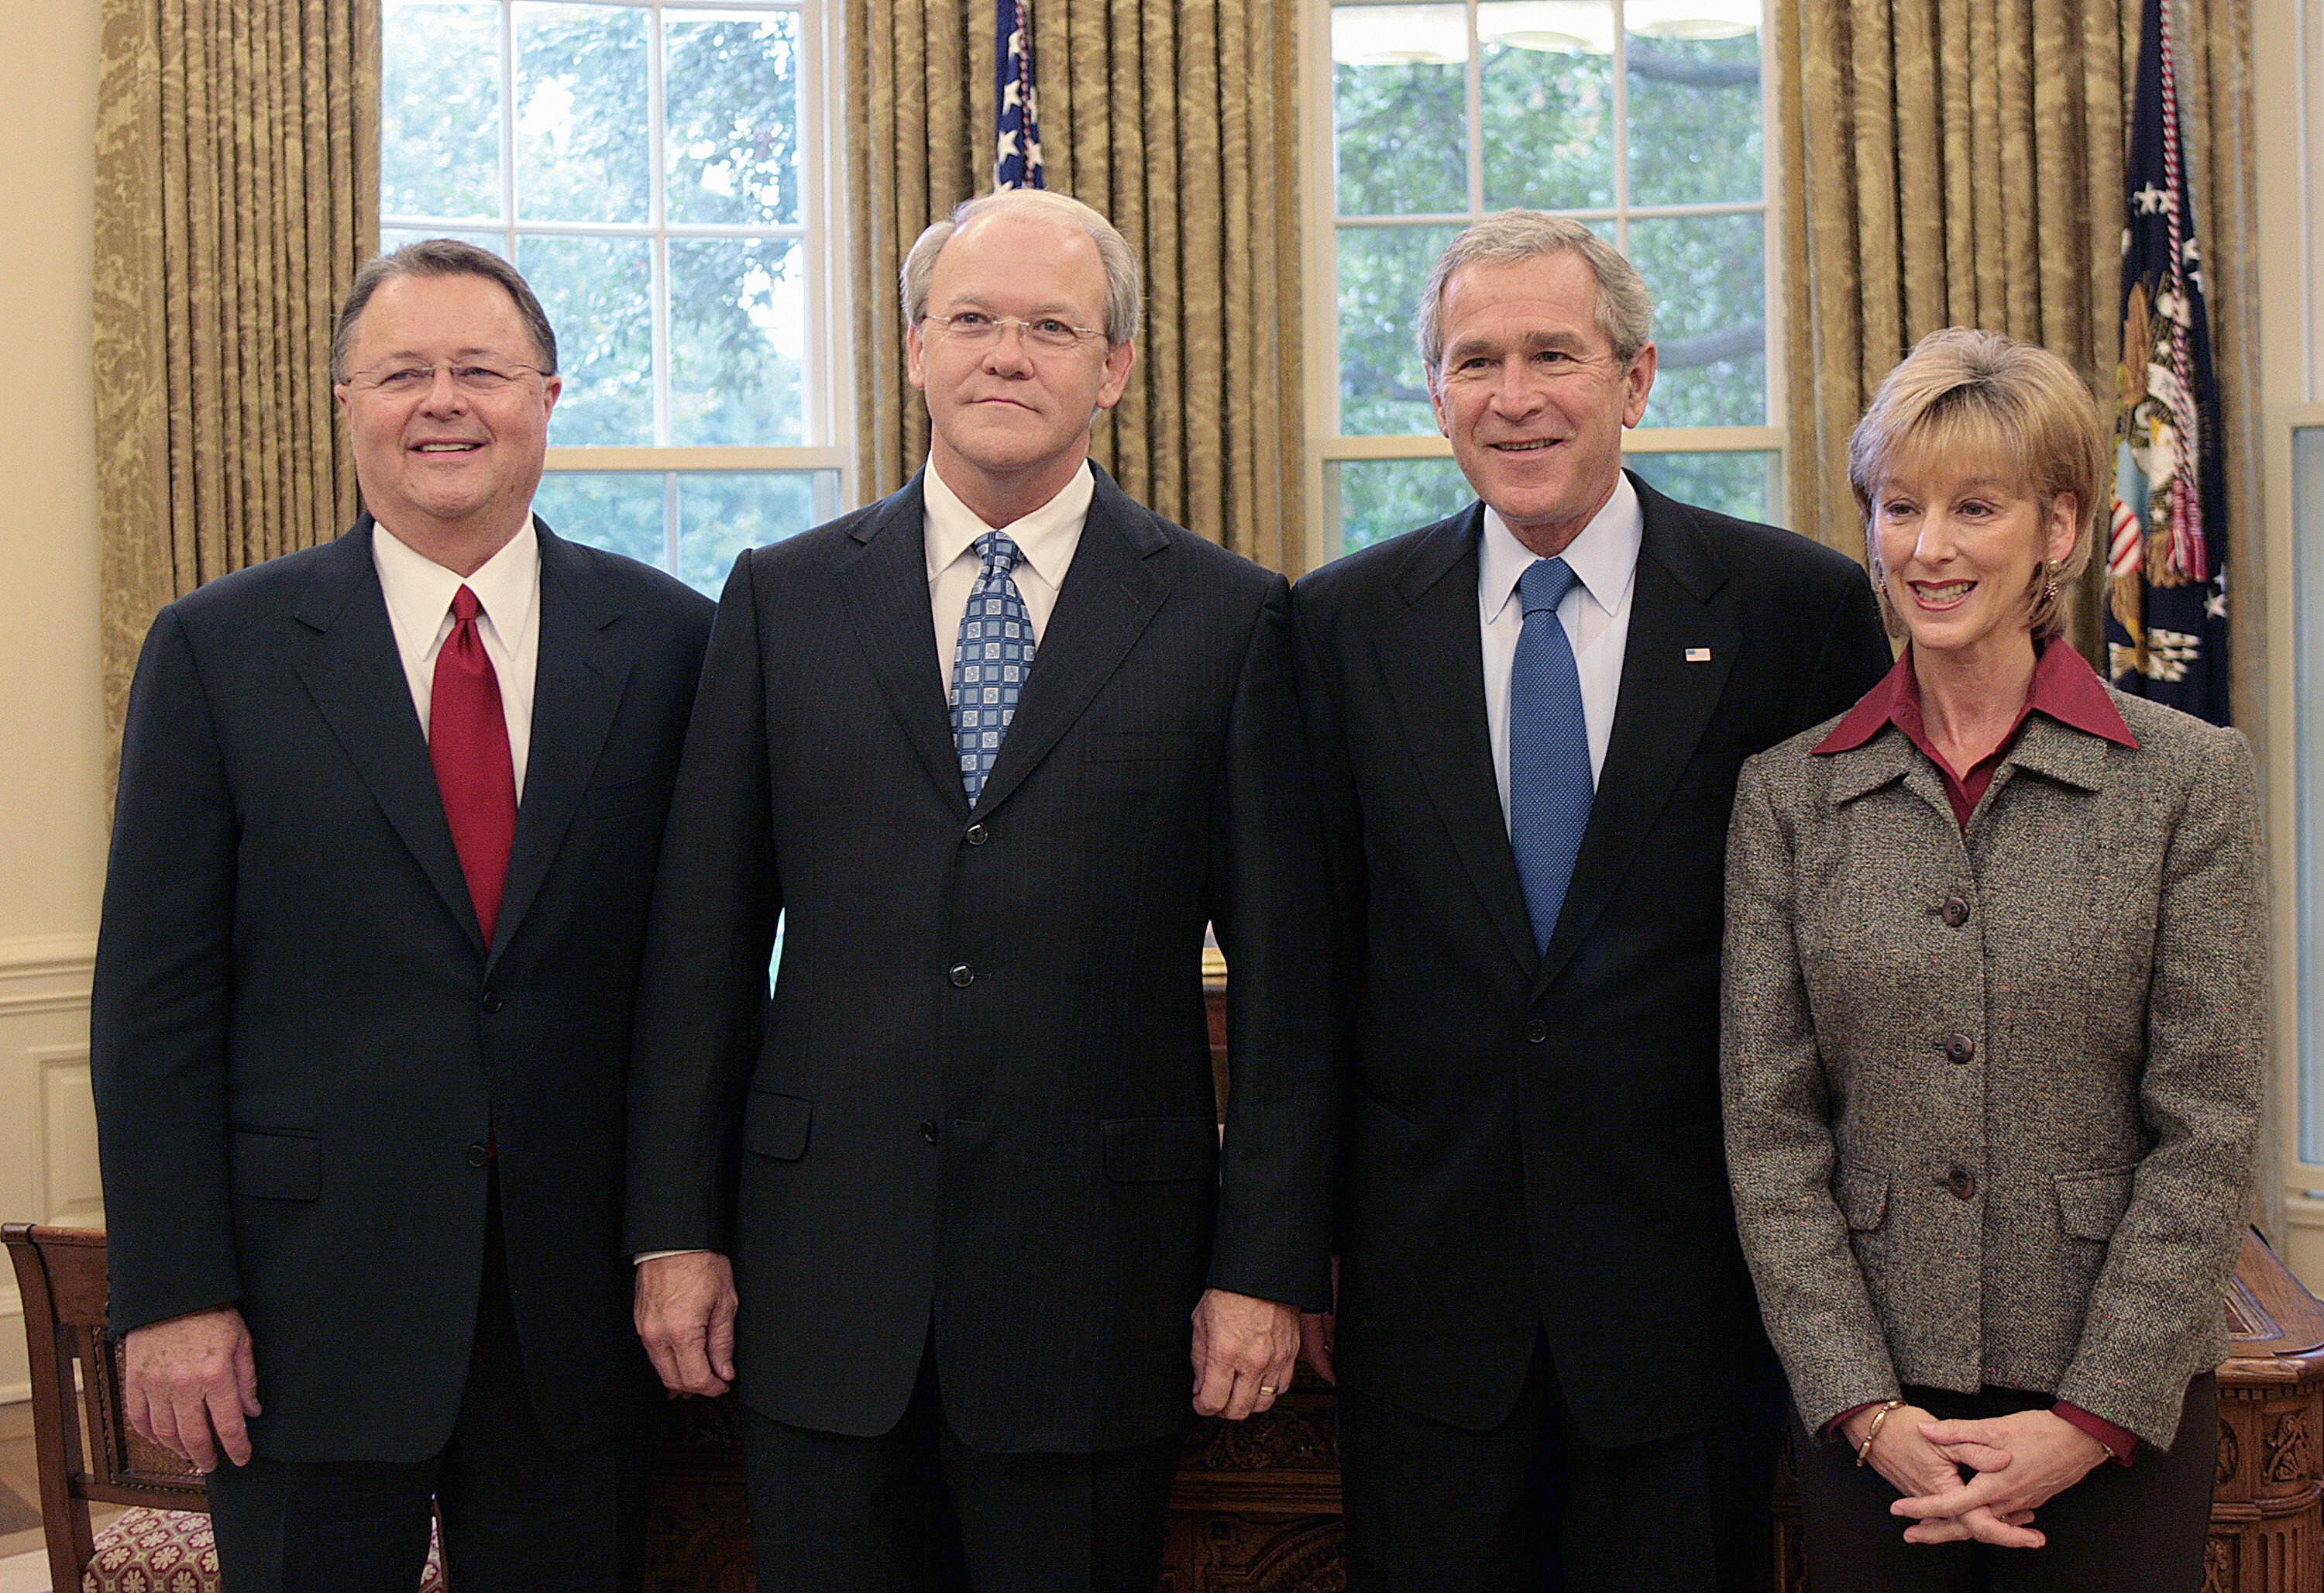 President George W. Bush poses with Dr. Frank Page (second from left) and his wife Dayle, and another Southern Baptist l